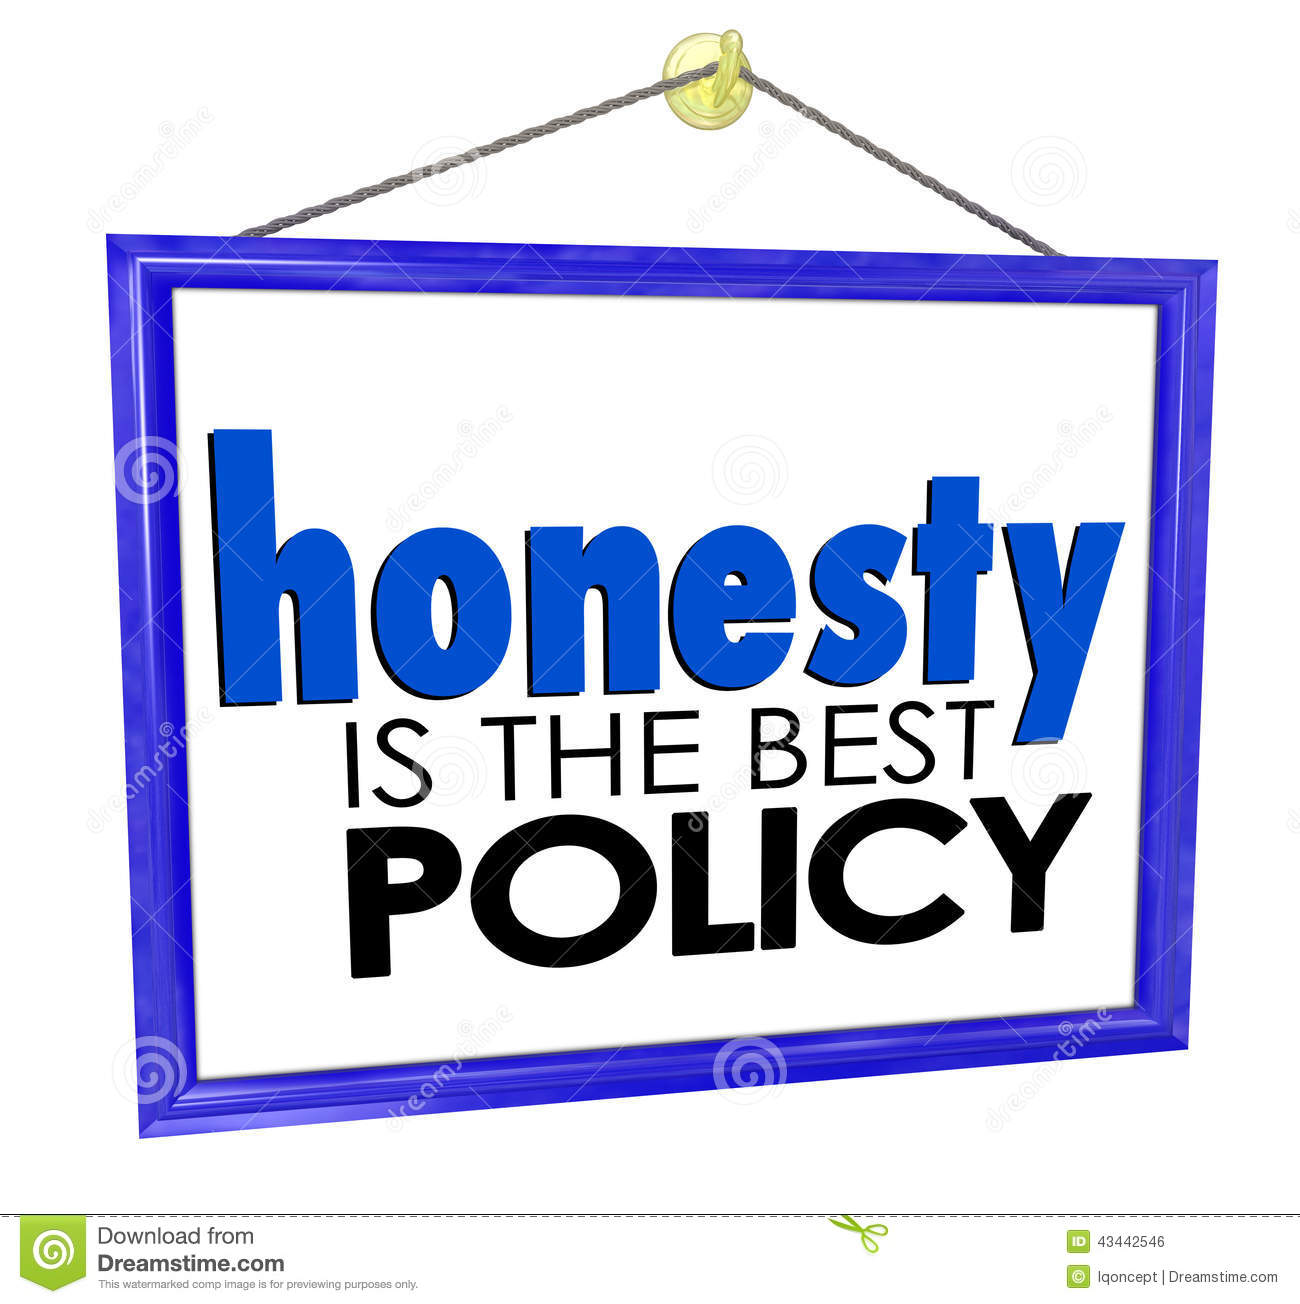 Honesty Quotes Images Download: Honesty Is The Best Policy Store Business Company Sign